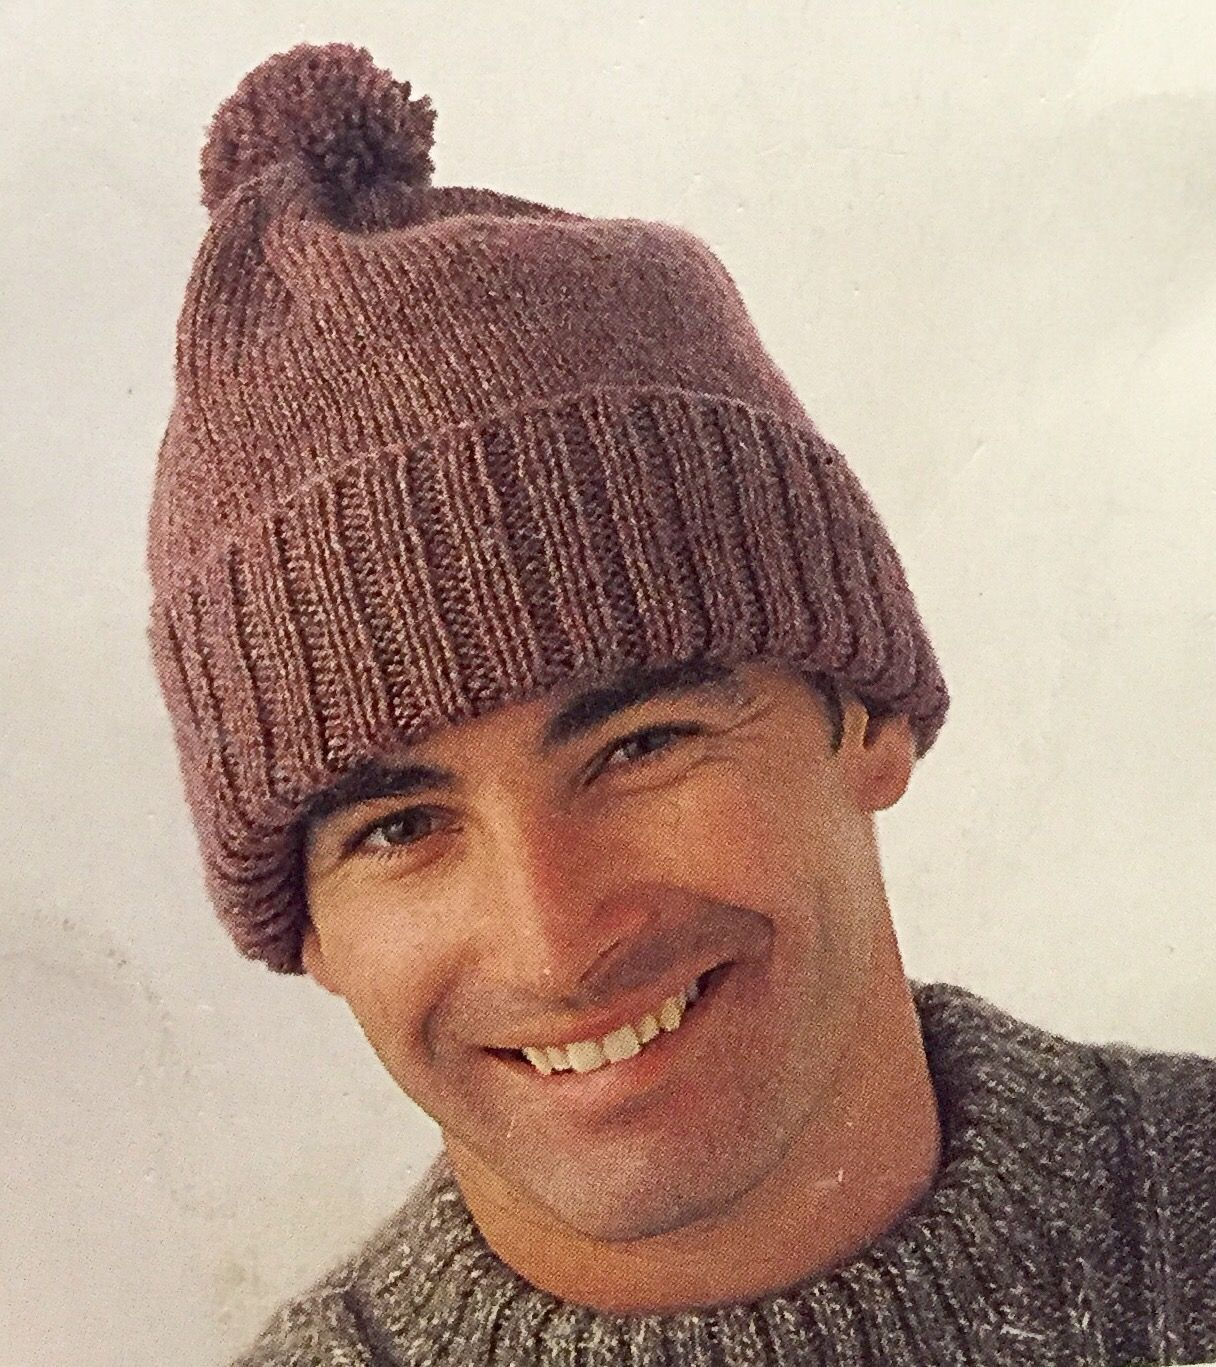 91ecc26bf22 Man s Knitted Beanie. Knitted beanie. 8 ply. 12 ply. Patons winter warmers.